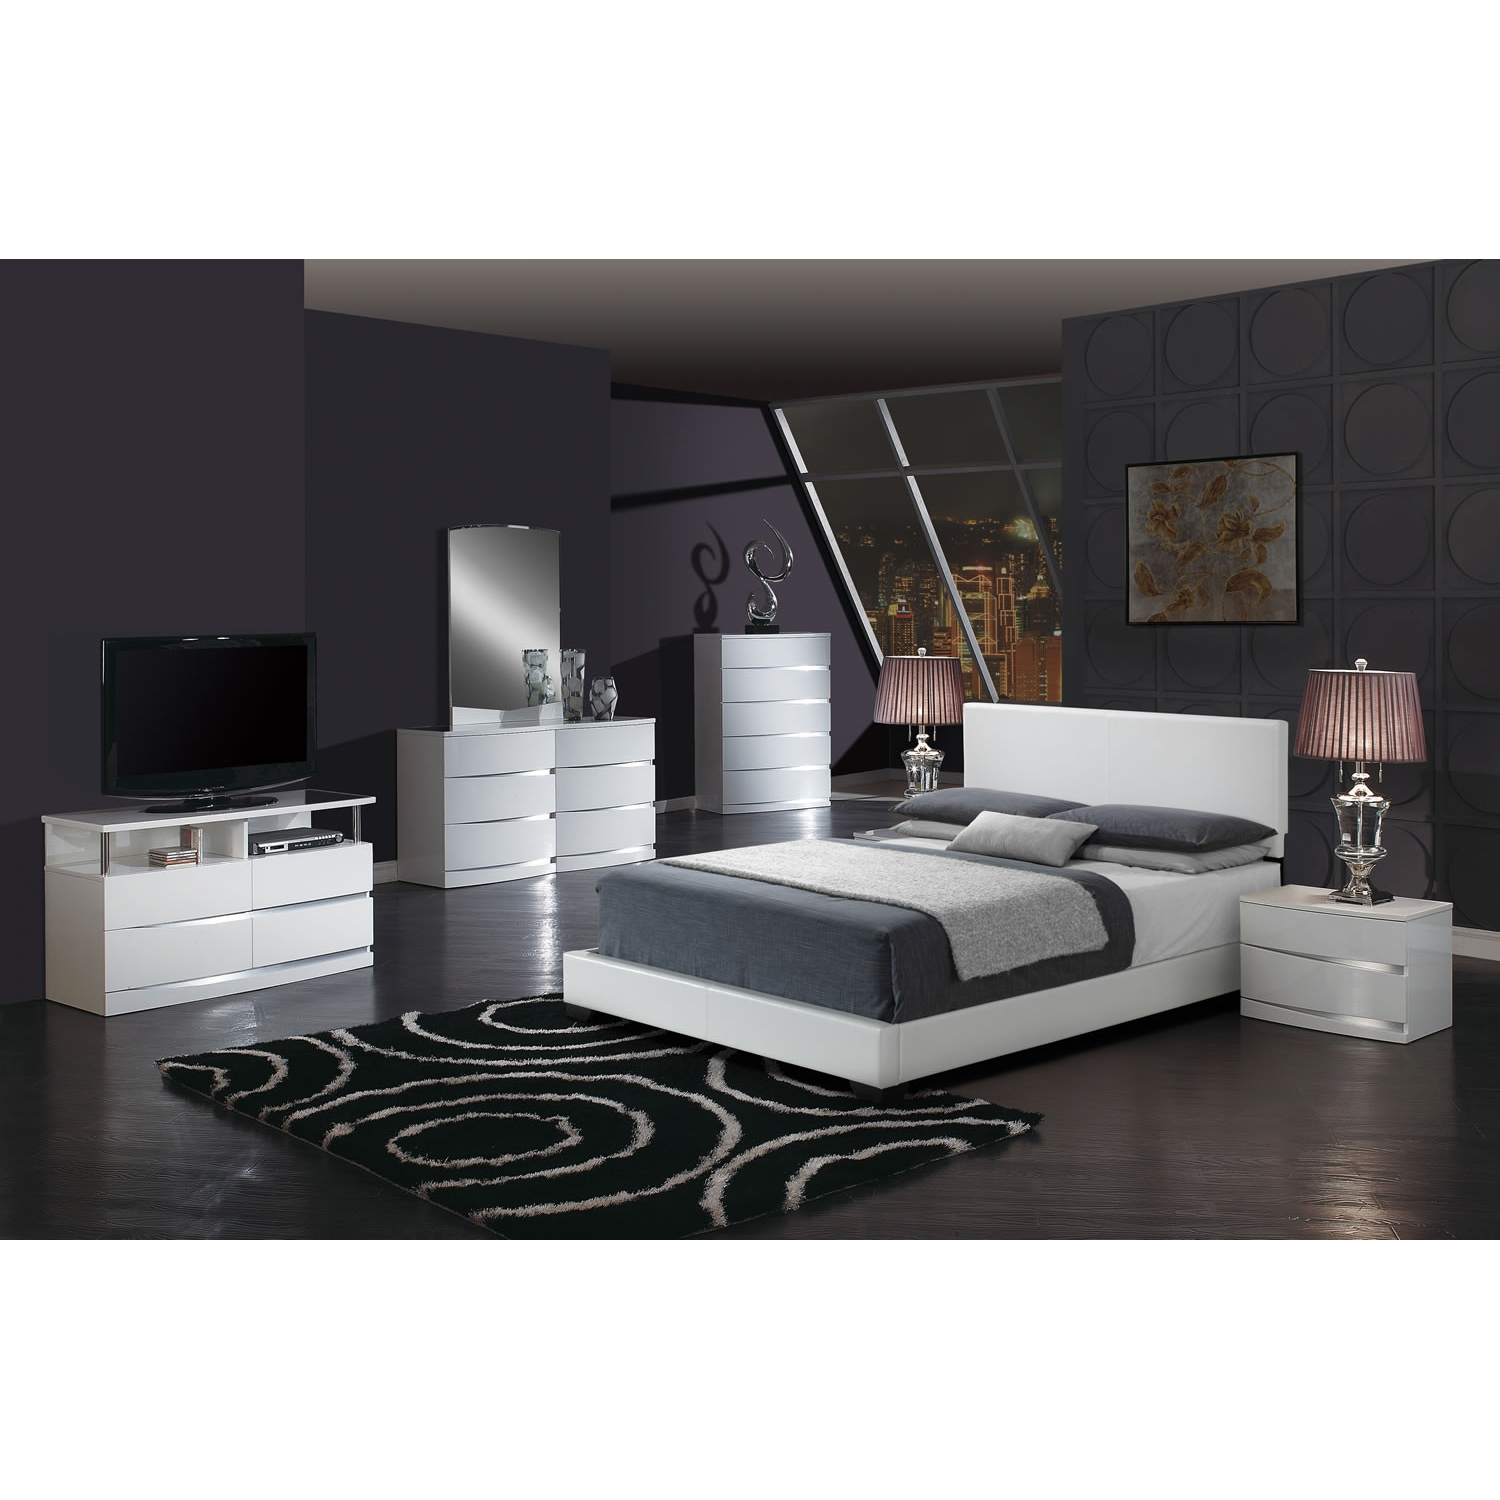 Cameron Leatherette Bed - White - GLO-8103-WH-M-BED